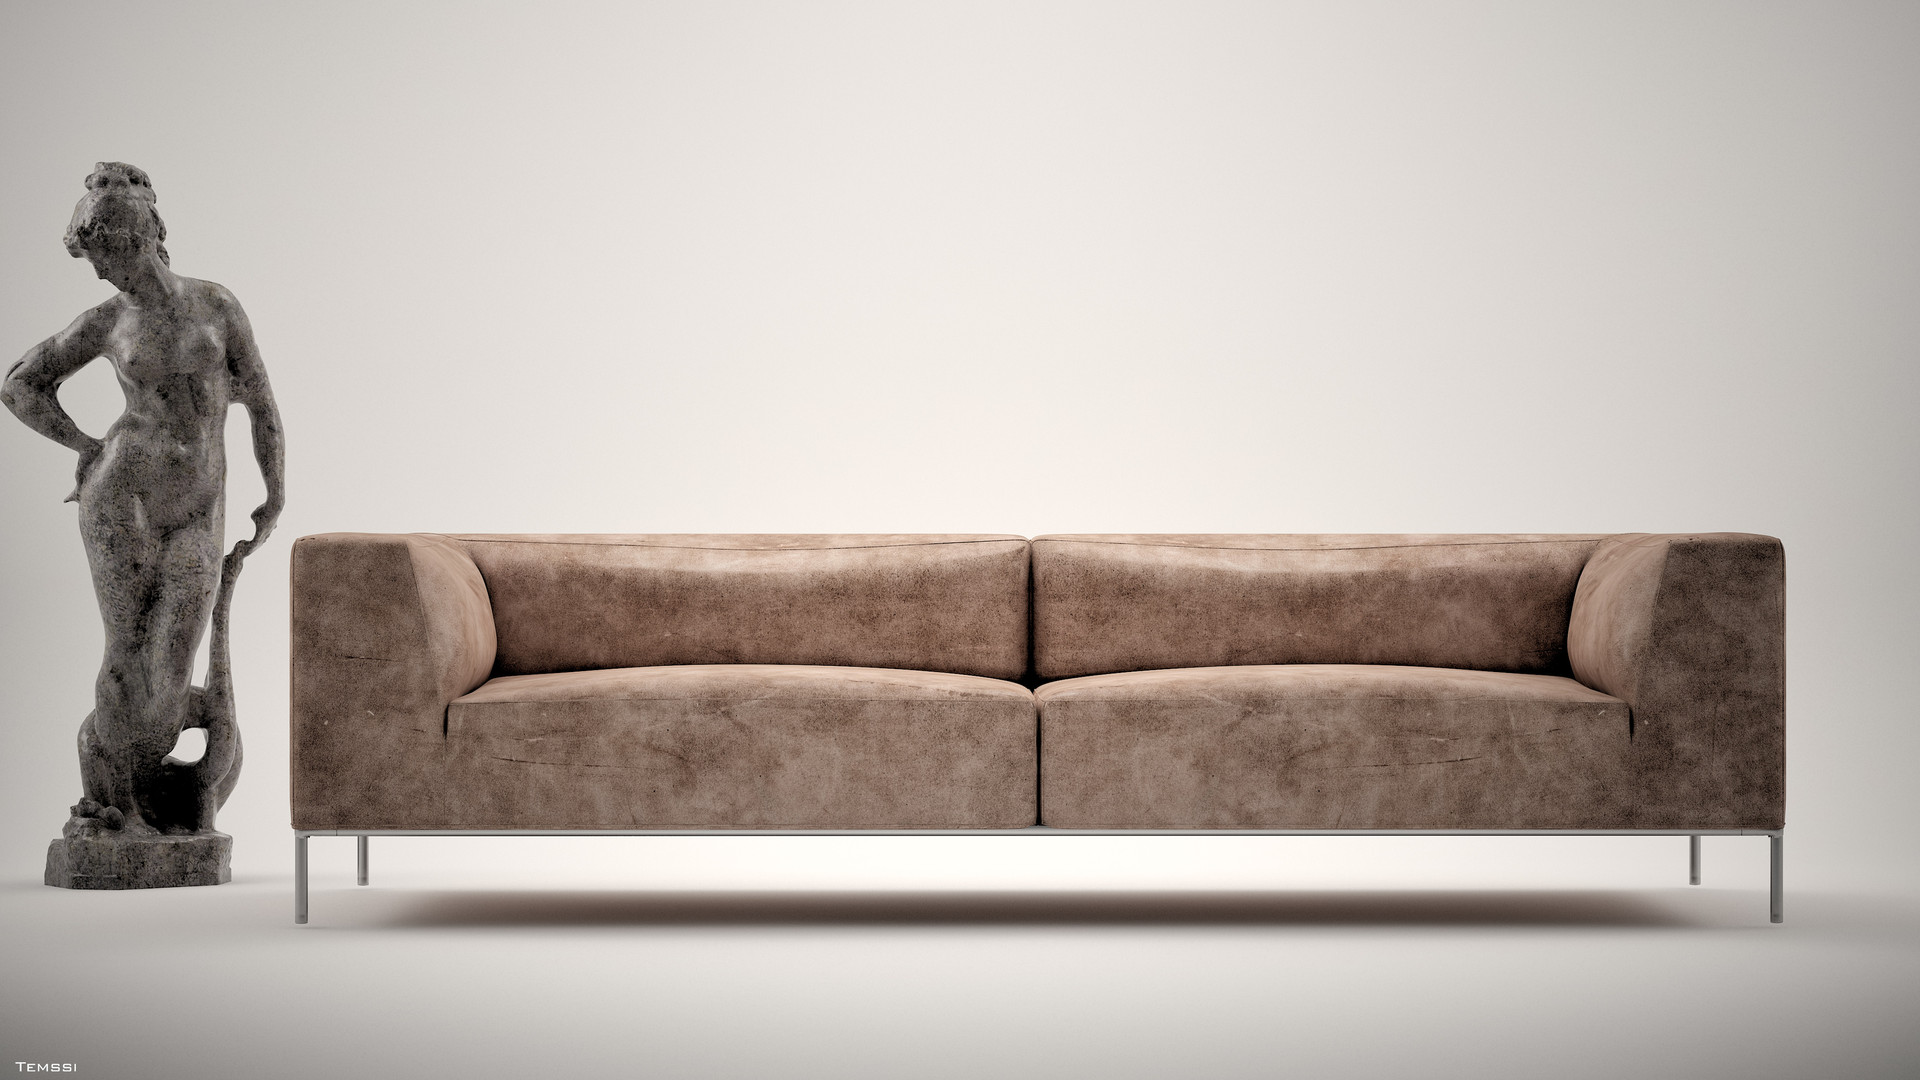 Sofa by Antonio Citterio